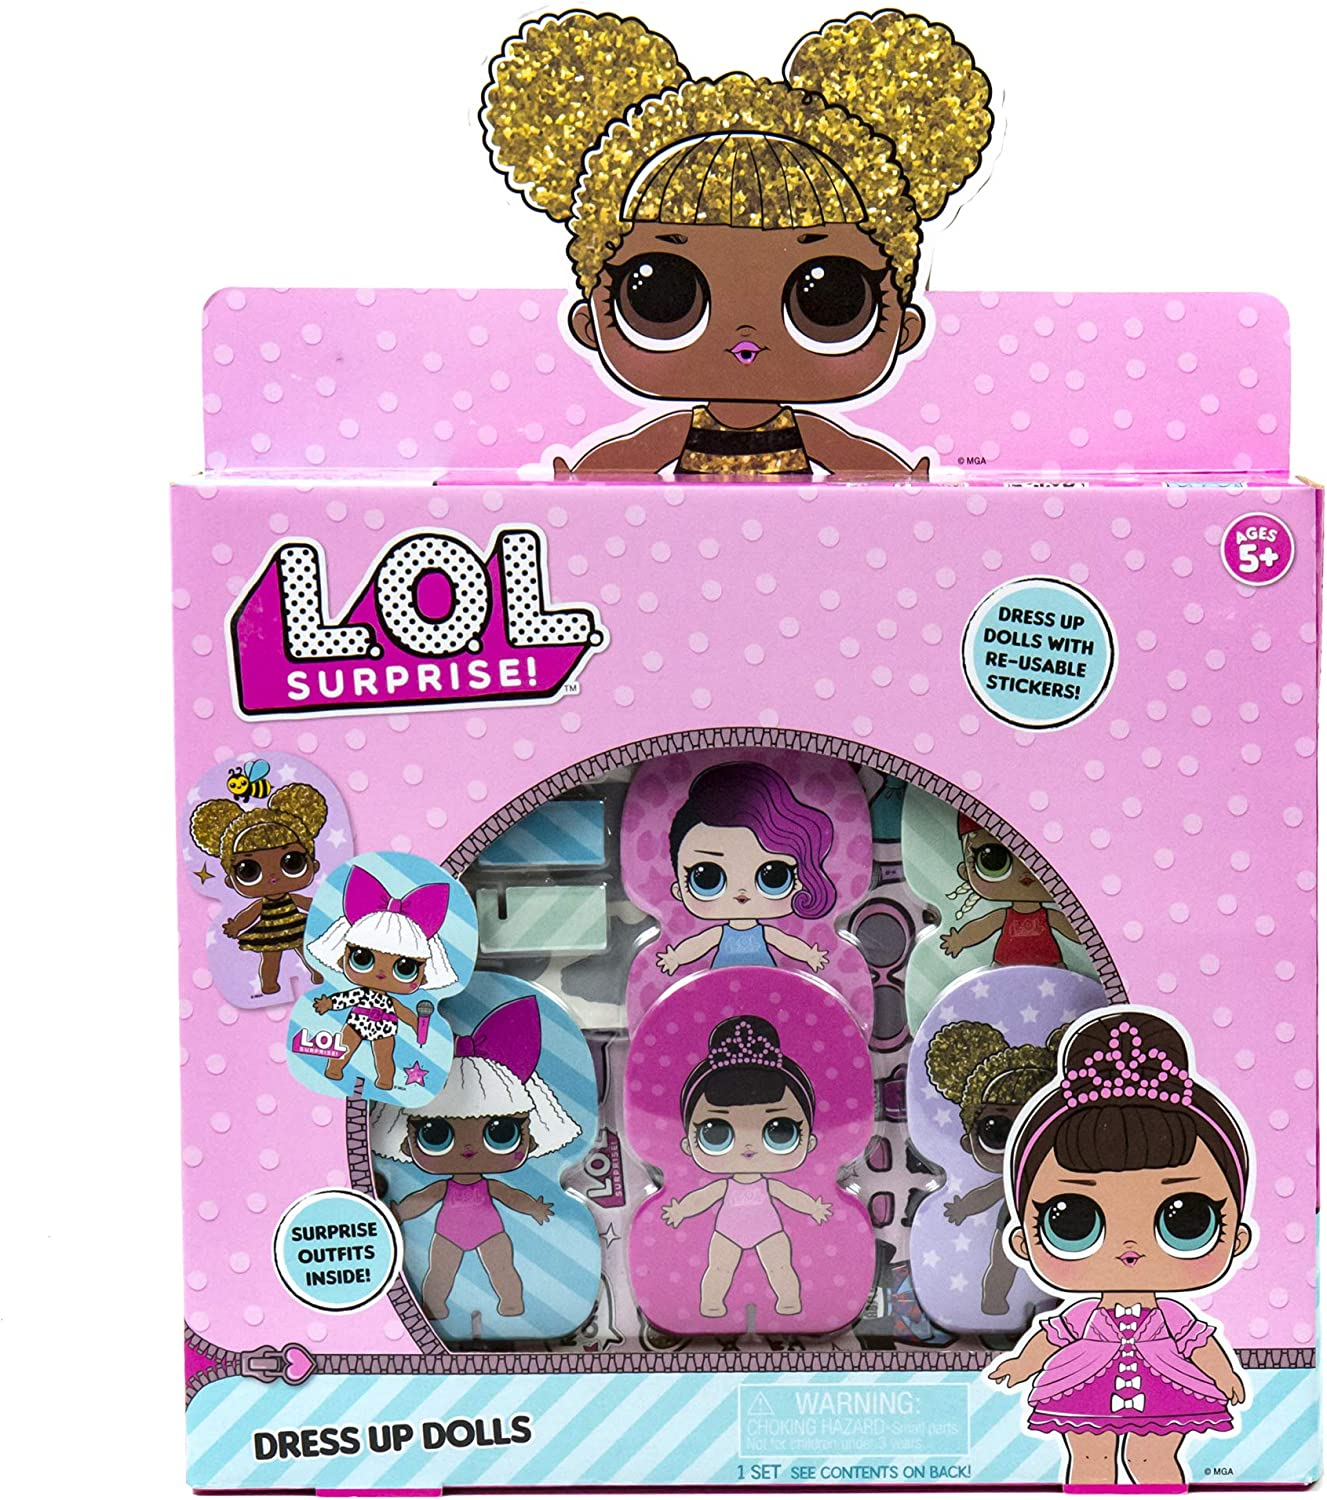 LOL Surprise! Fashion Dress Up Dolls by Horizon Group USA.Create DIY Themes & Patterns.Activity Kit Includes5 Paper Dolls, 1 Repositionable Sticker, Scratch Art, Easy to Follow Instructions & More.